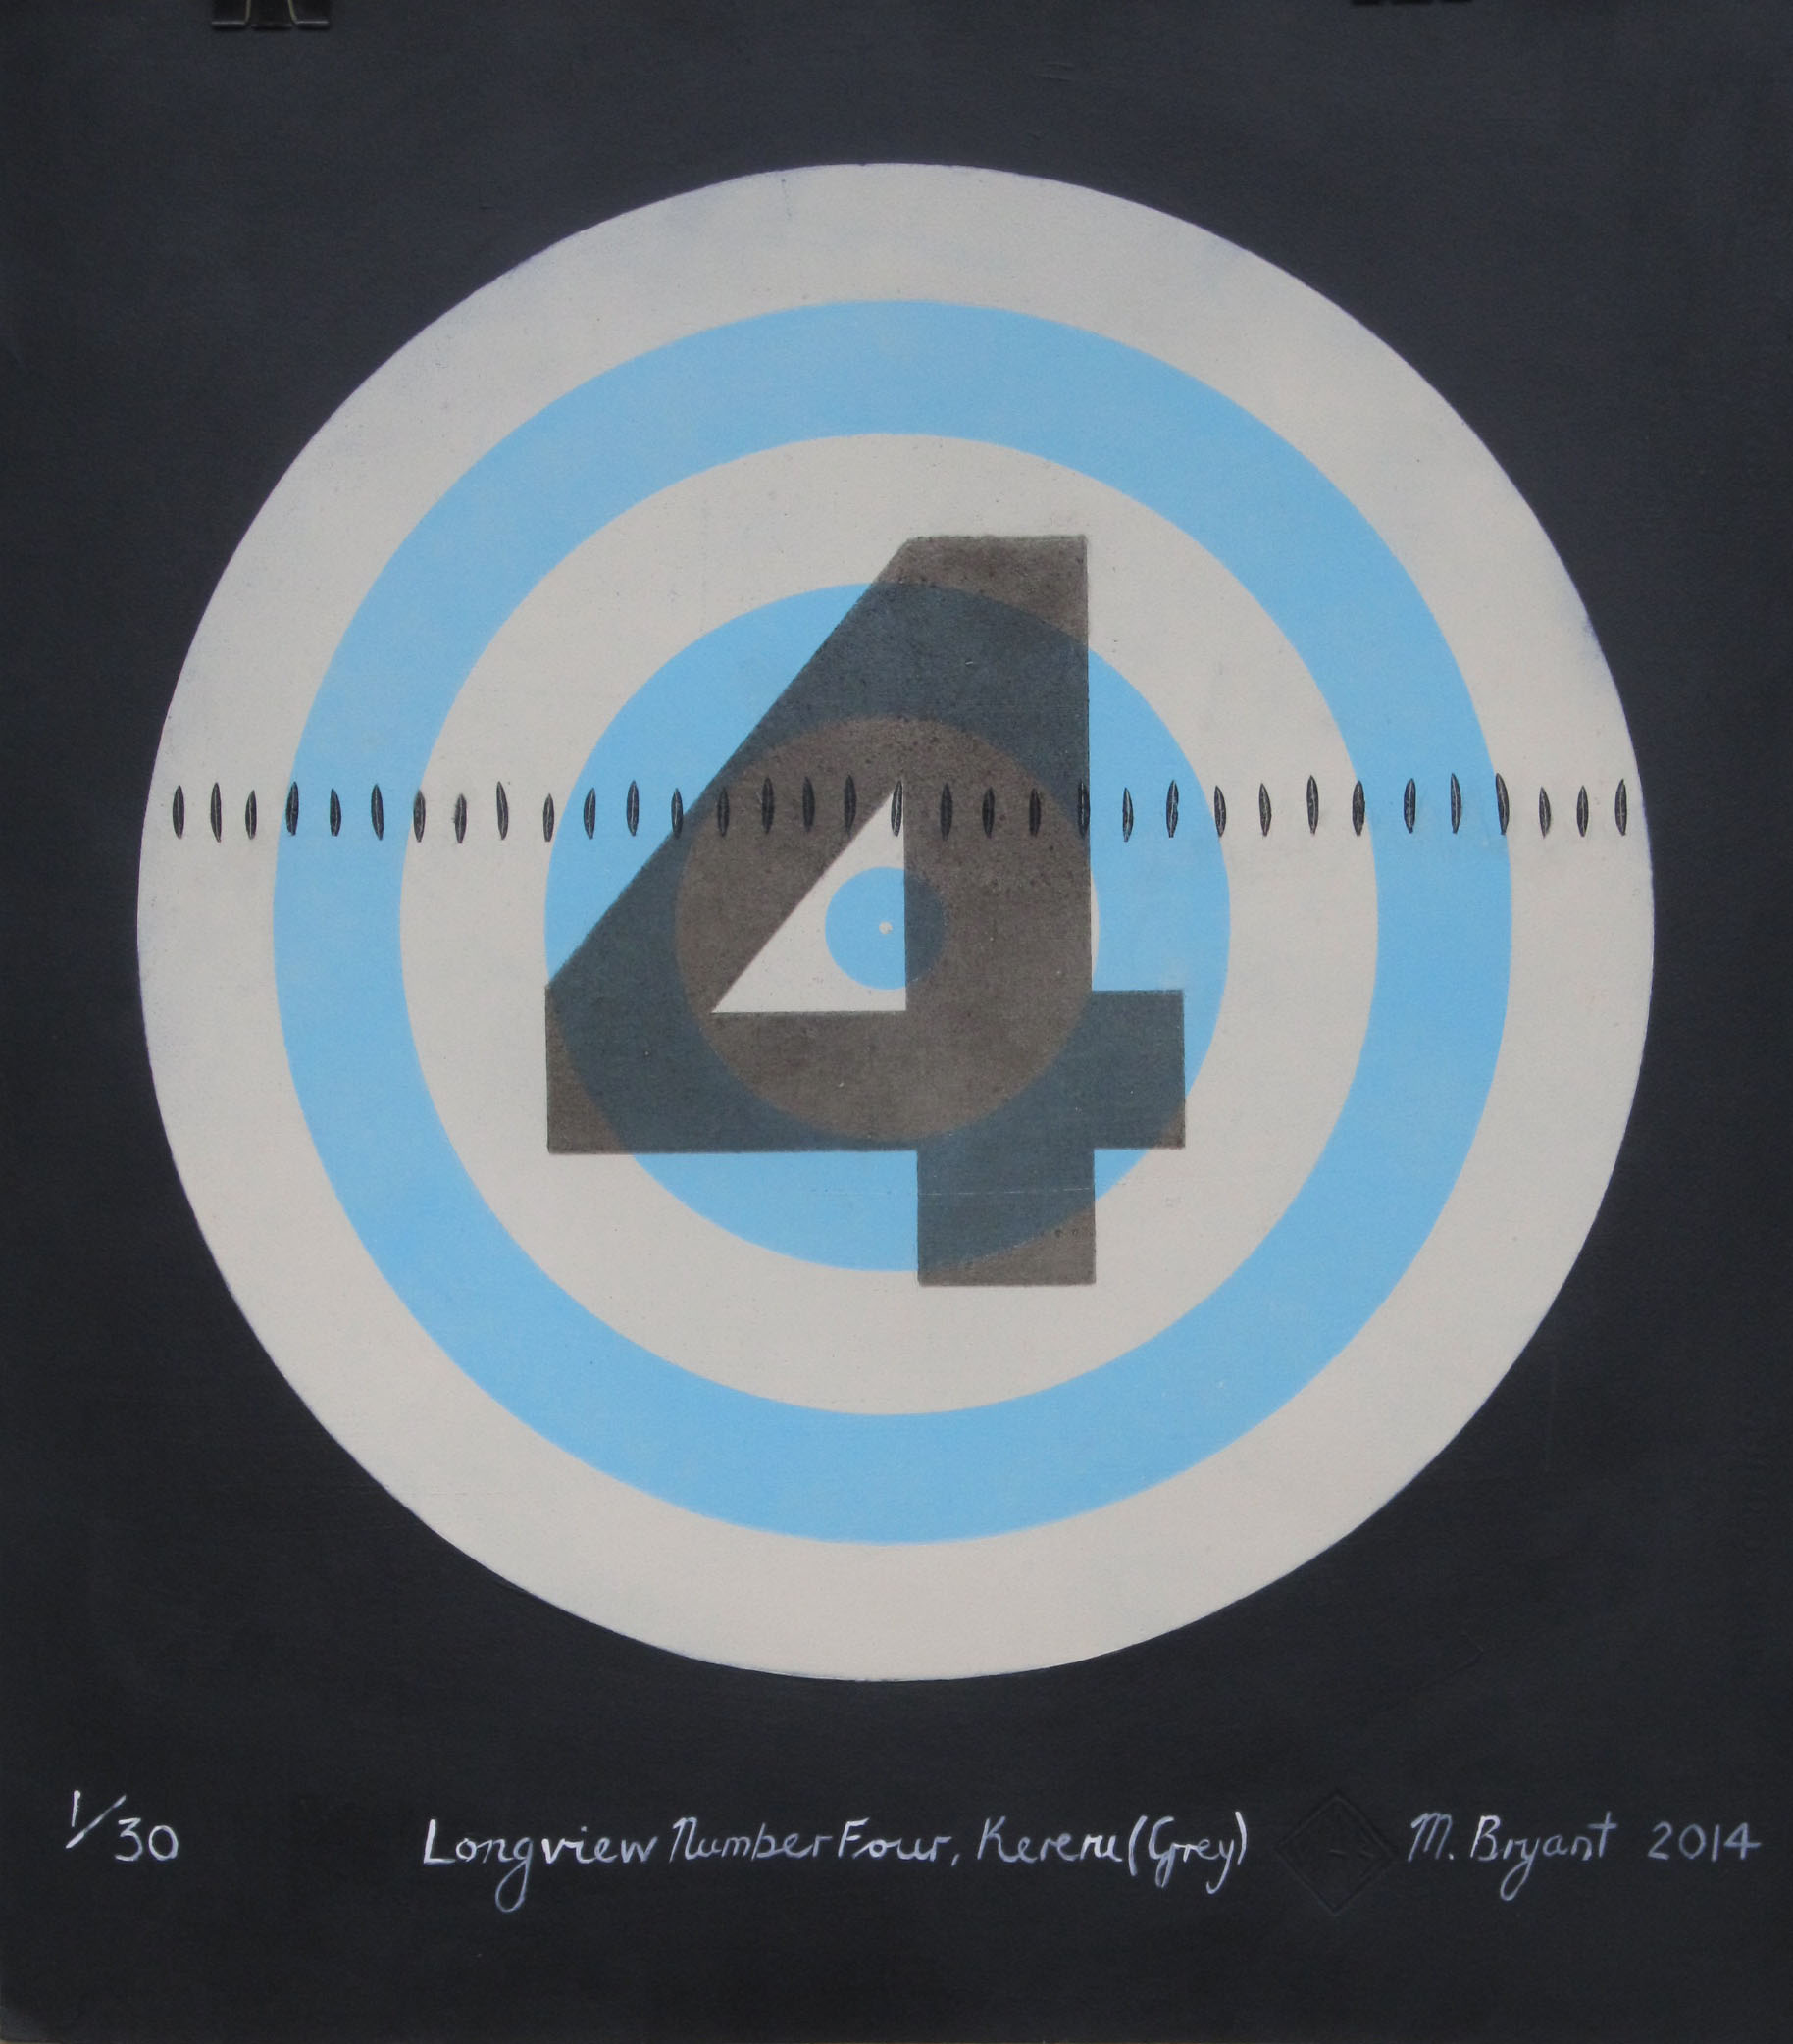 Longview Number Four, Kereru (Grey) Michele Bryant 2014 (2)